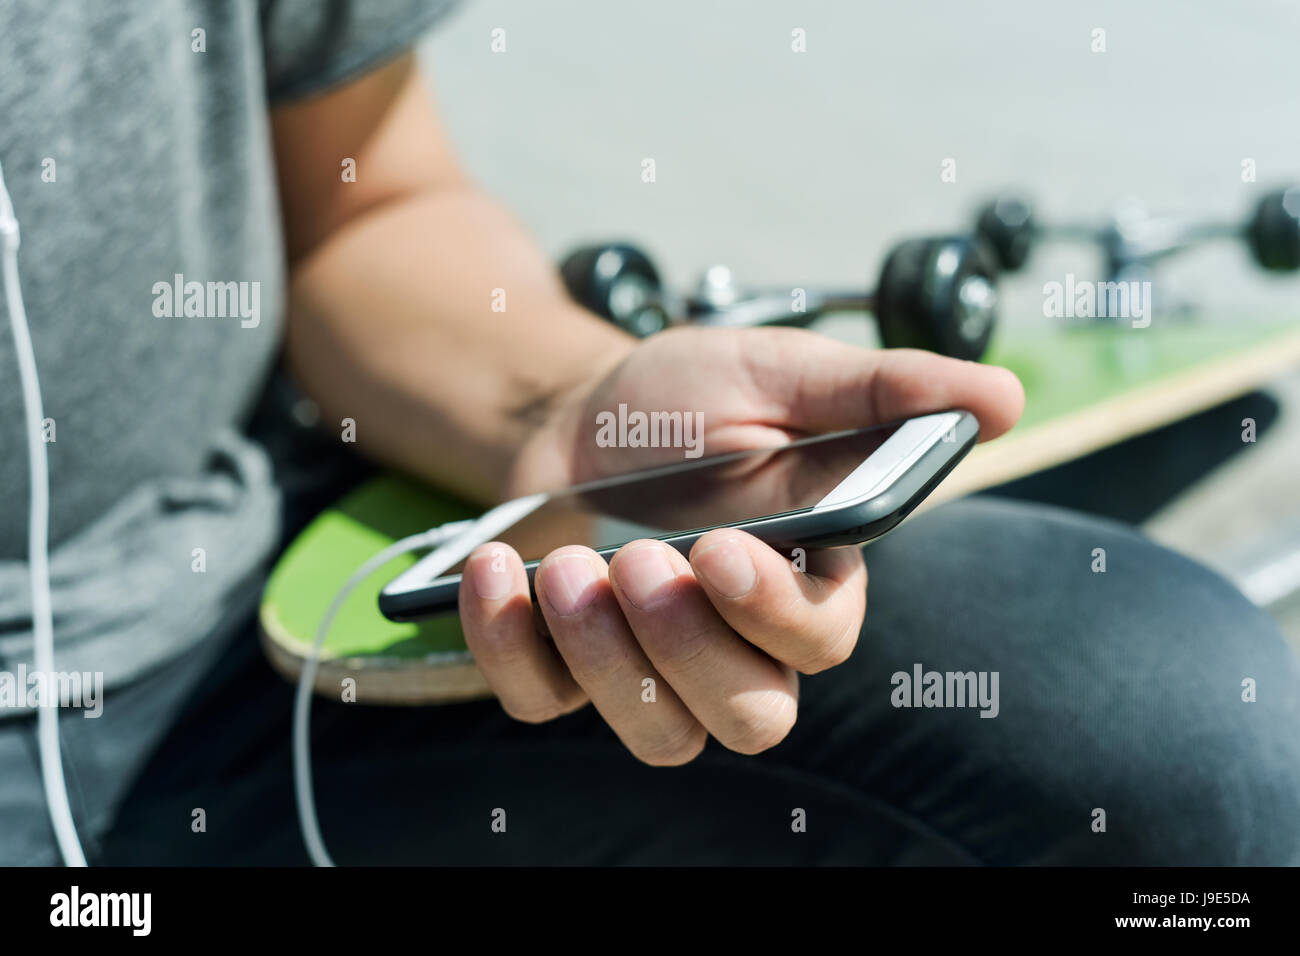 closeup of a young caucasian man outdoors with a skateboard on his lap using his smartphone with earphones plugged - Stock Image